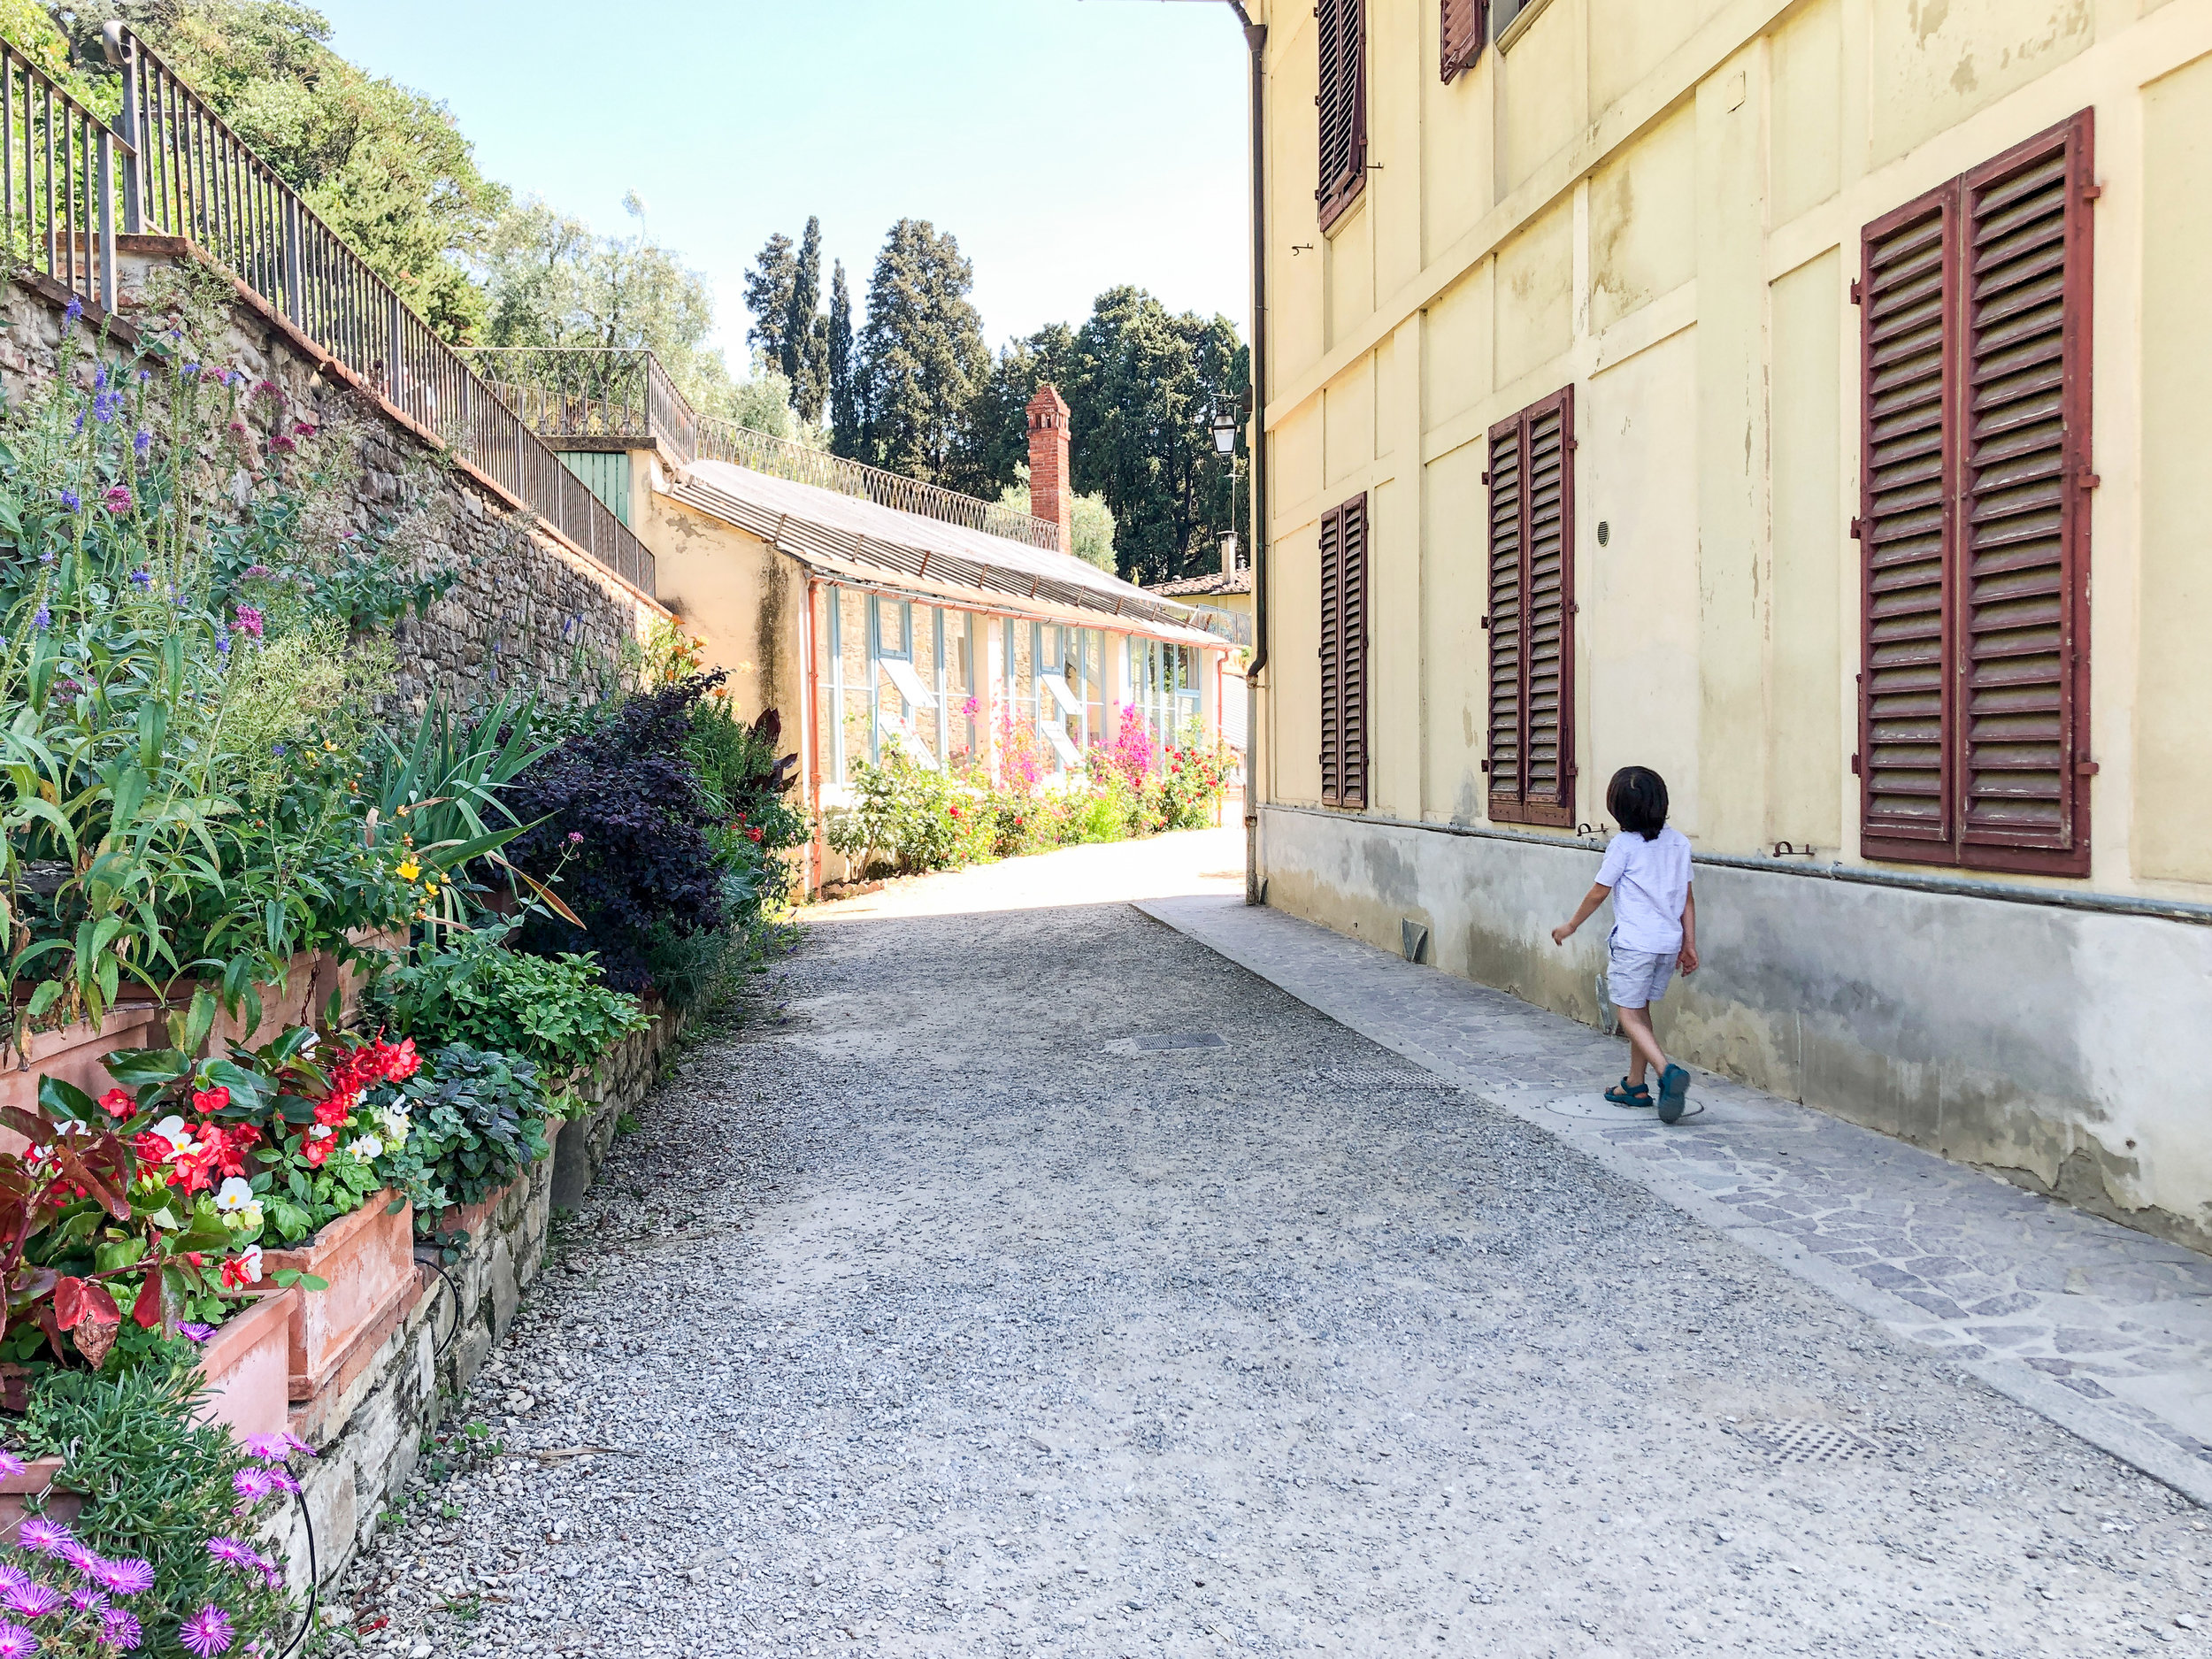 Giardino delle rose | Florence Italy | Firenze Italy | Happily Curated Chaos | happilycuratedchaos.com